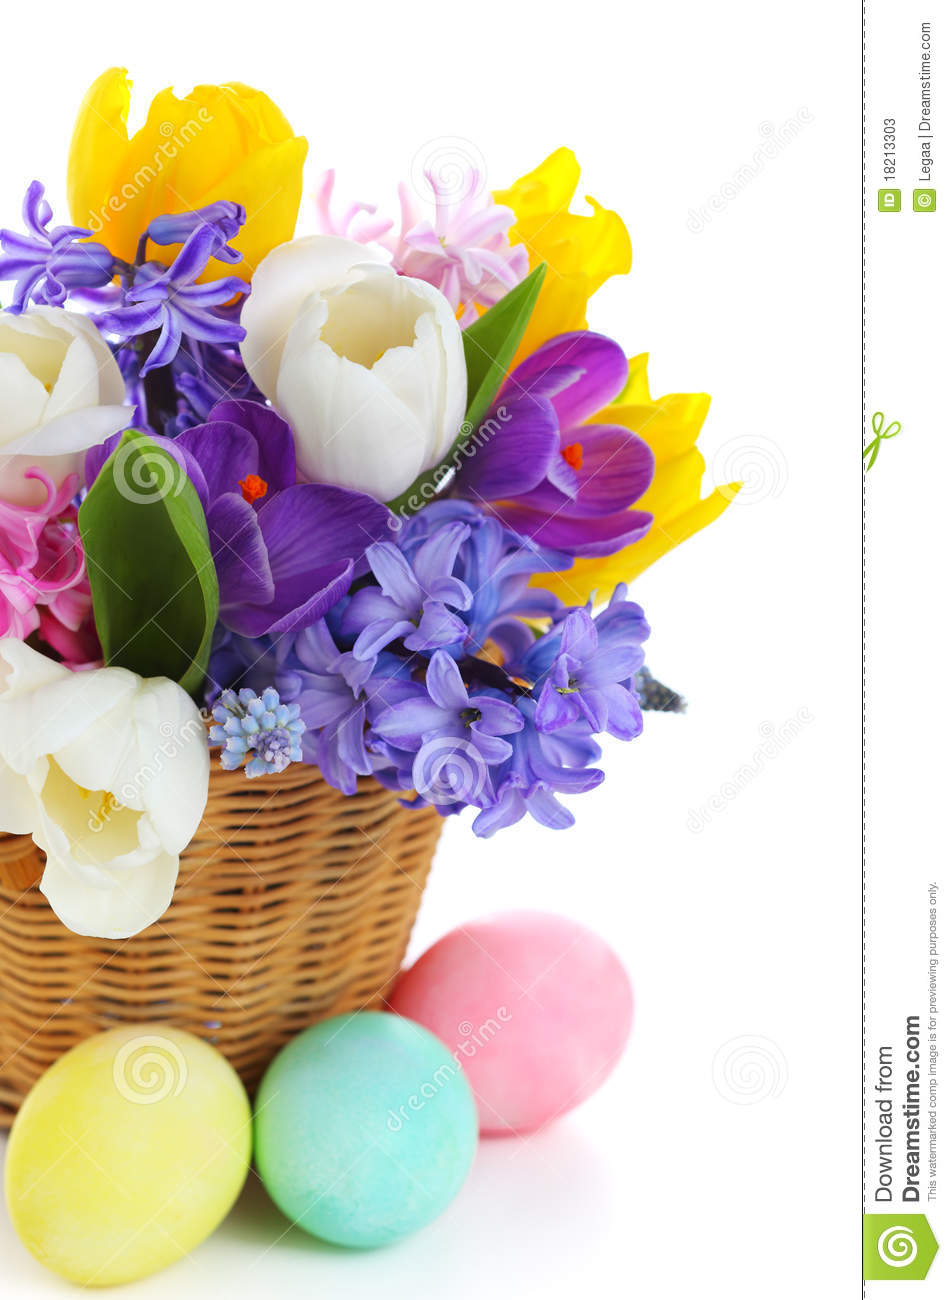 Bouquet Of Spring Flowers In Basket With Eggs Stock Image Image Of